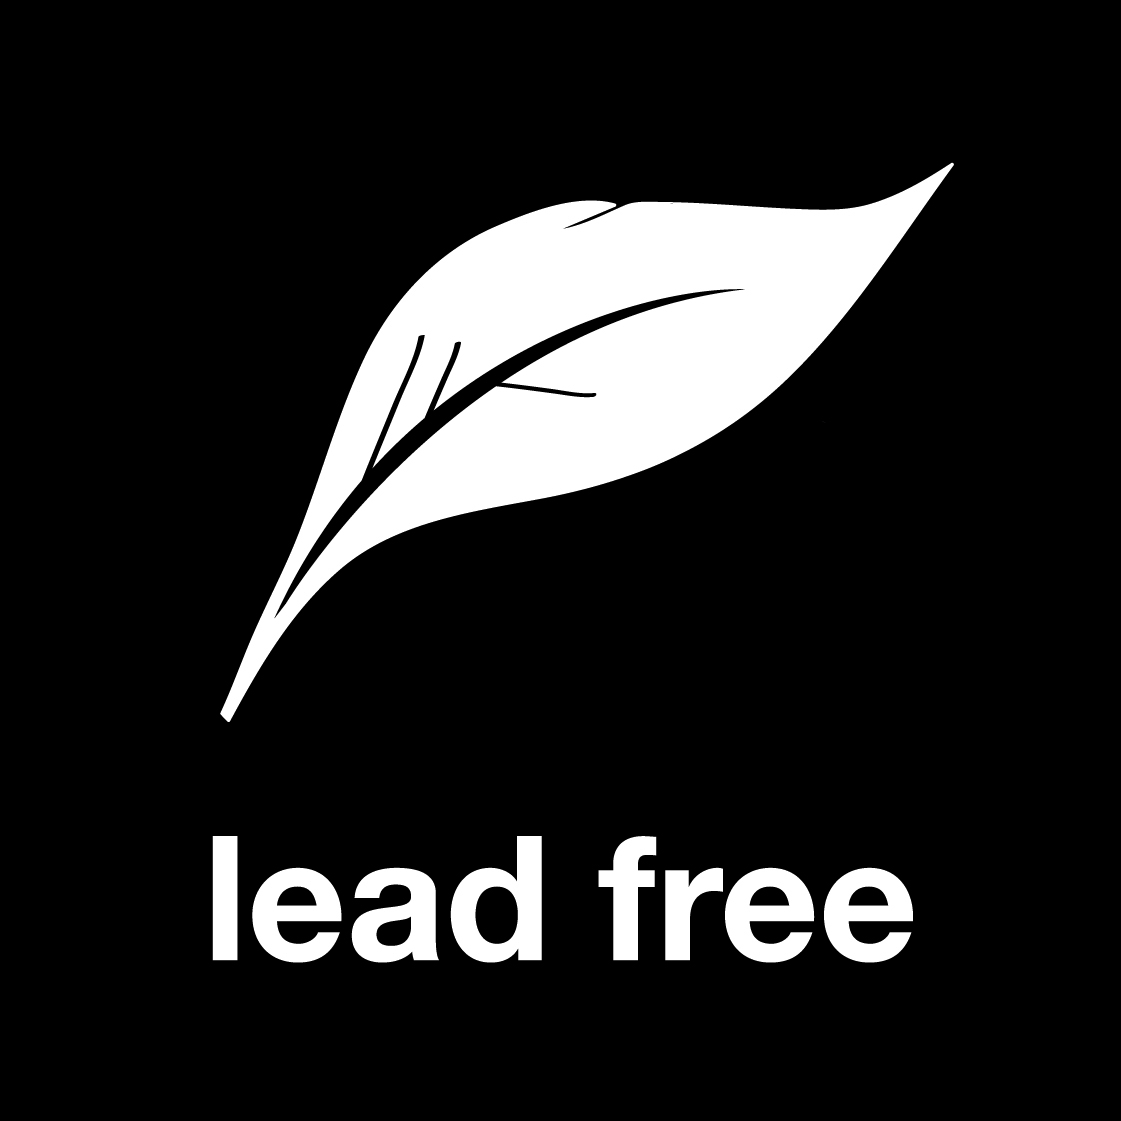 leadfree.jpg